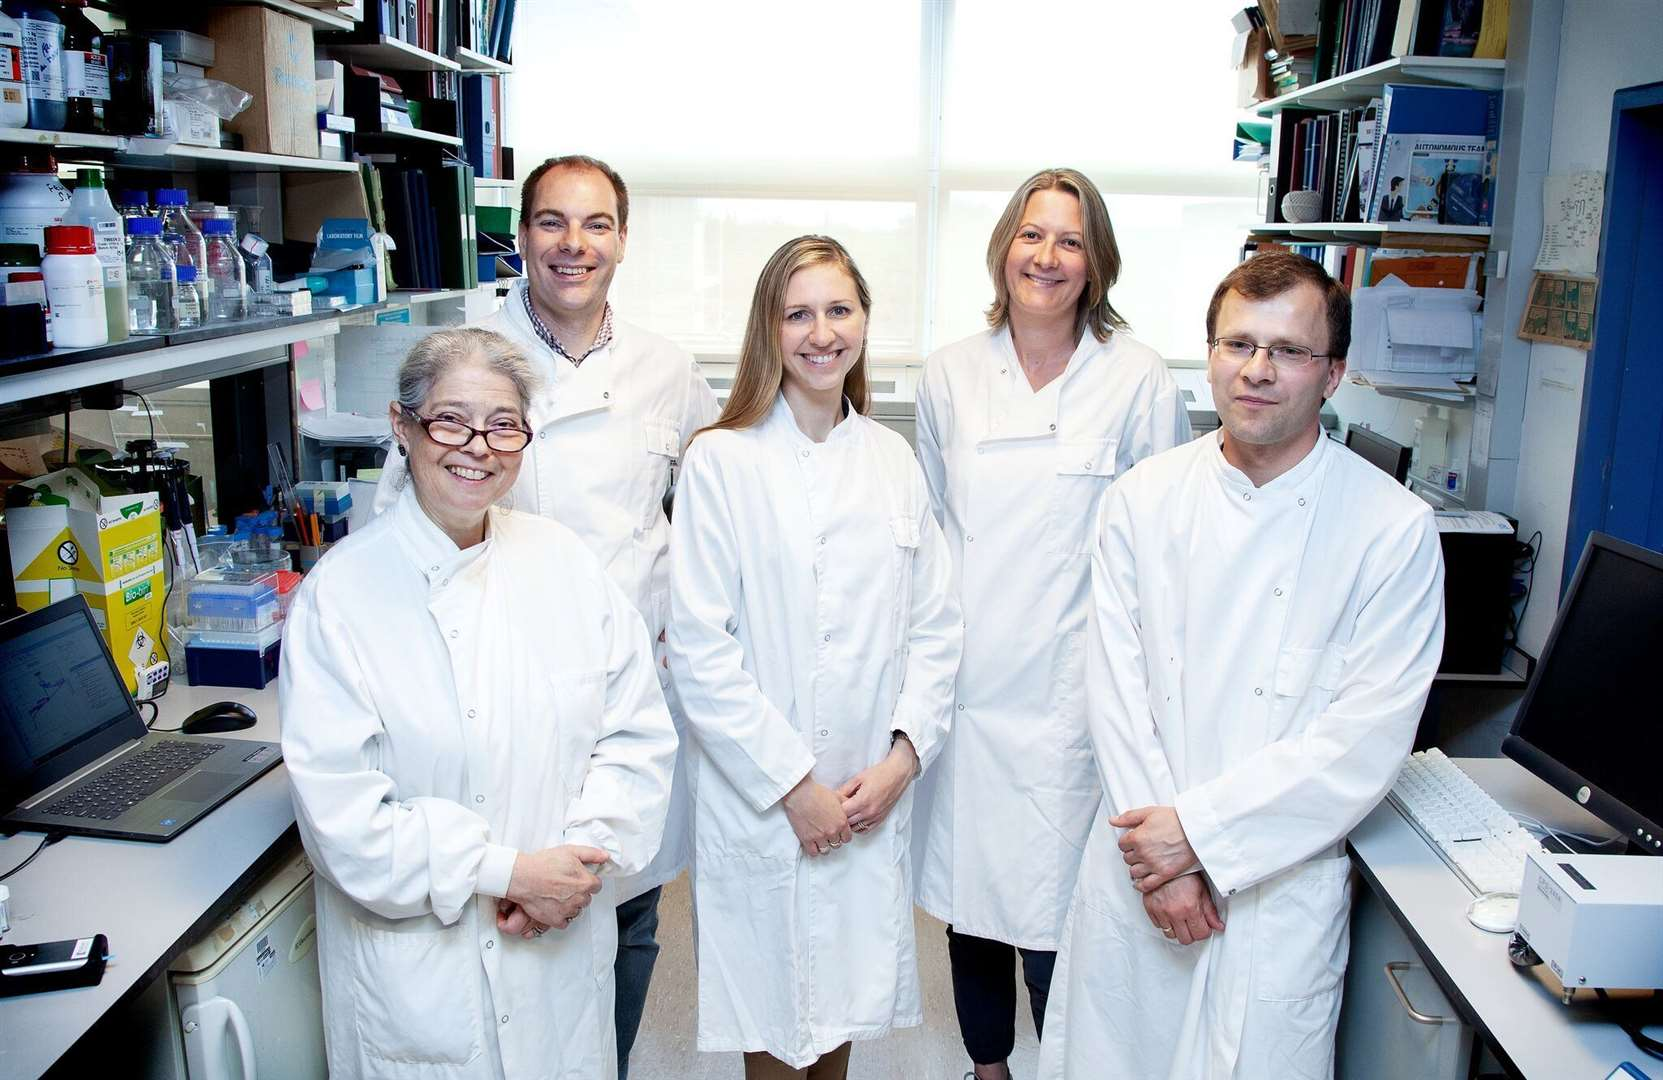 The Kalium Health team in their Cambridge laboratory. From left, Professor Fiona Karet, chief medical officer; Tom Collings, chief executive officer, Dr Tanya Hutter, chief technology officer; Dr Liz Norgett, chief scientific officer; Dr Greg Orlowski, lead electrochemist. Picture: Melanie Yeneralski, CUH Media Studio (31492084)